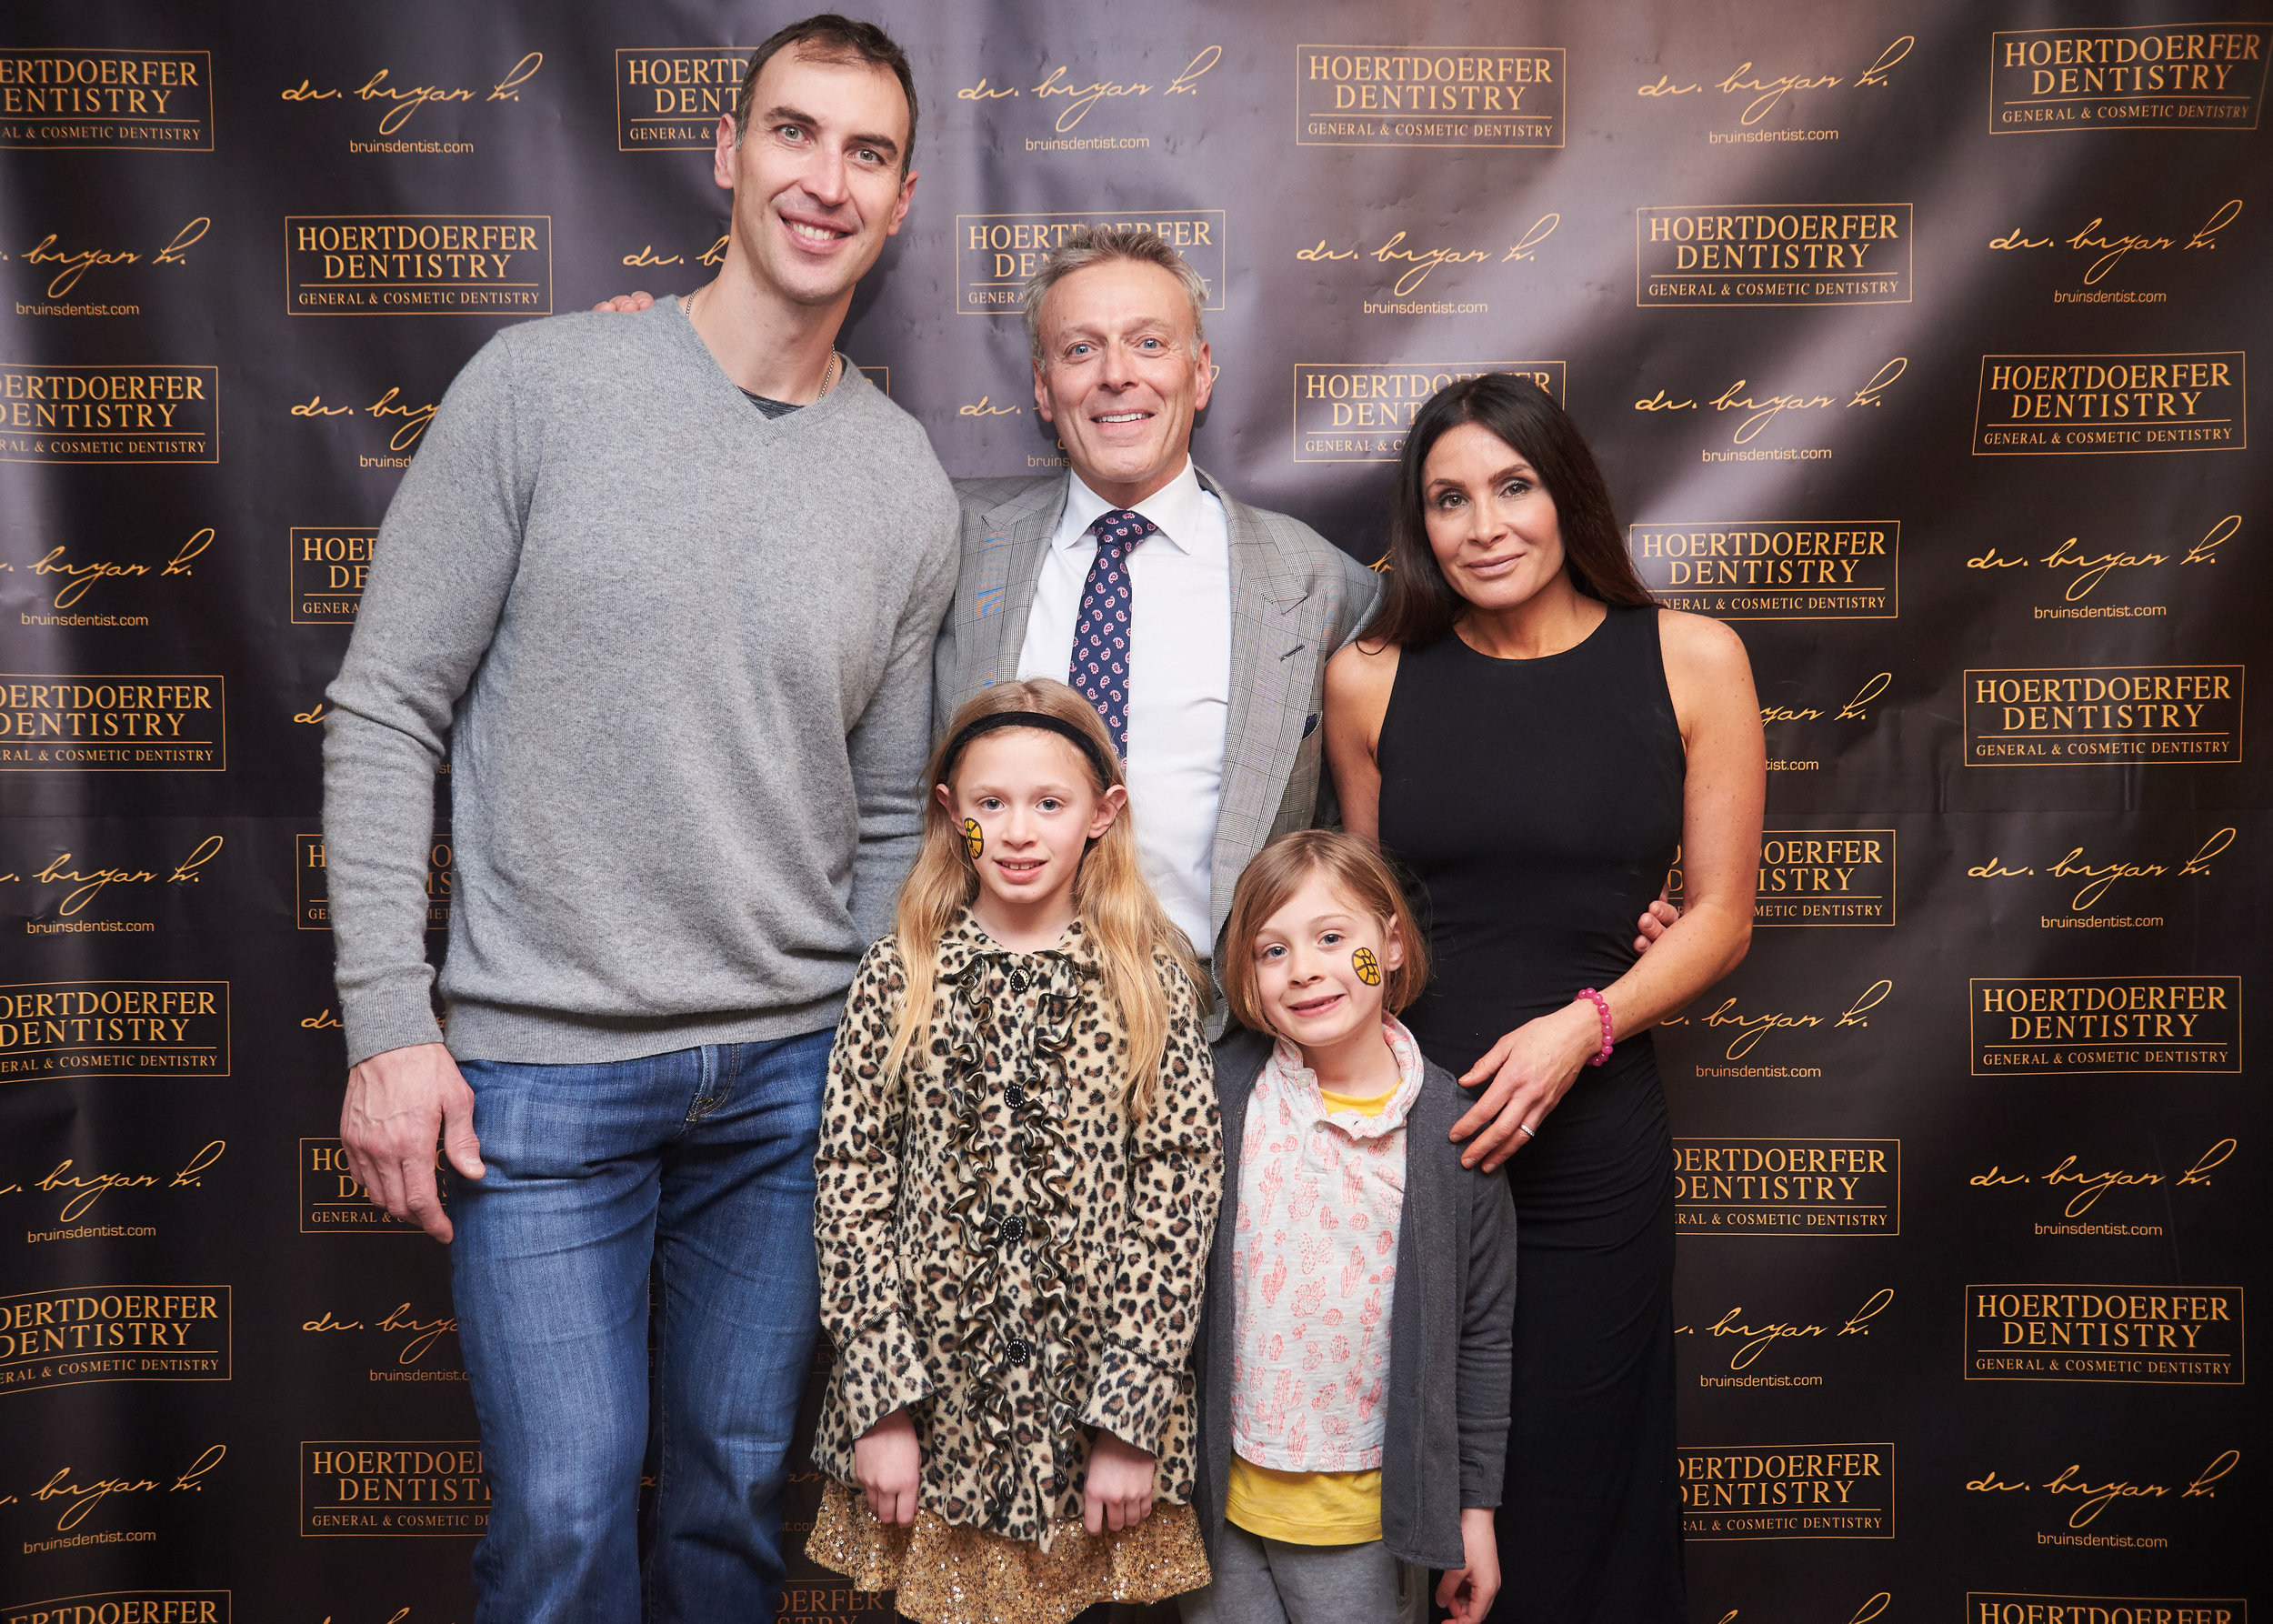 Dr. H and his family with Boston Bruins Captain Zdeno Chara at the 8th Annual Big Z Challenge. The Big Z Challenge has raised over $150k for the Elliot Hospital Regional Cancer Center.